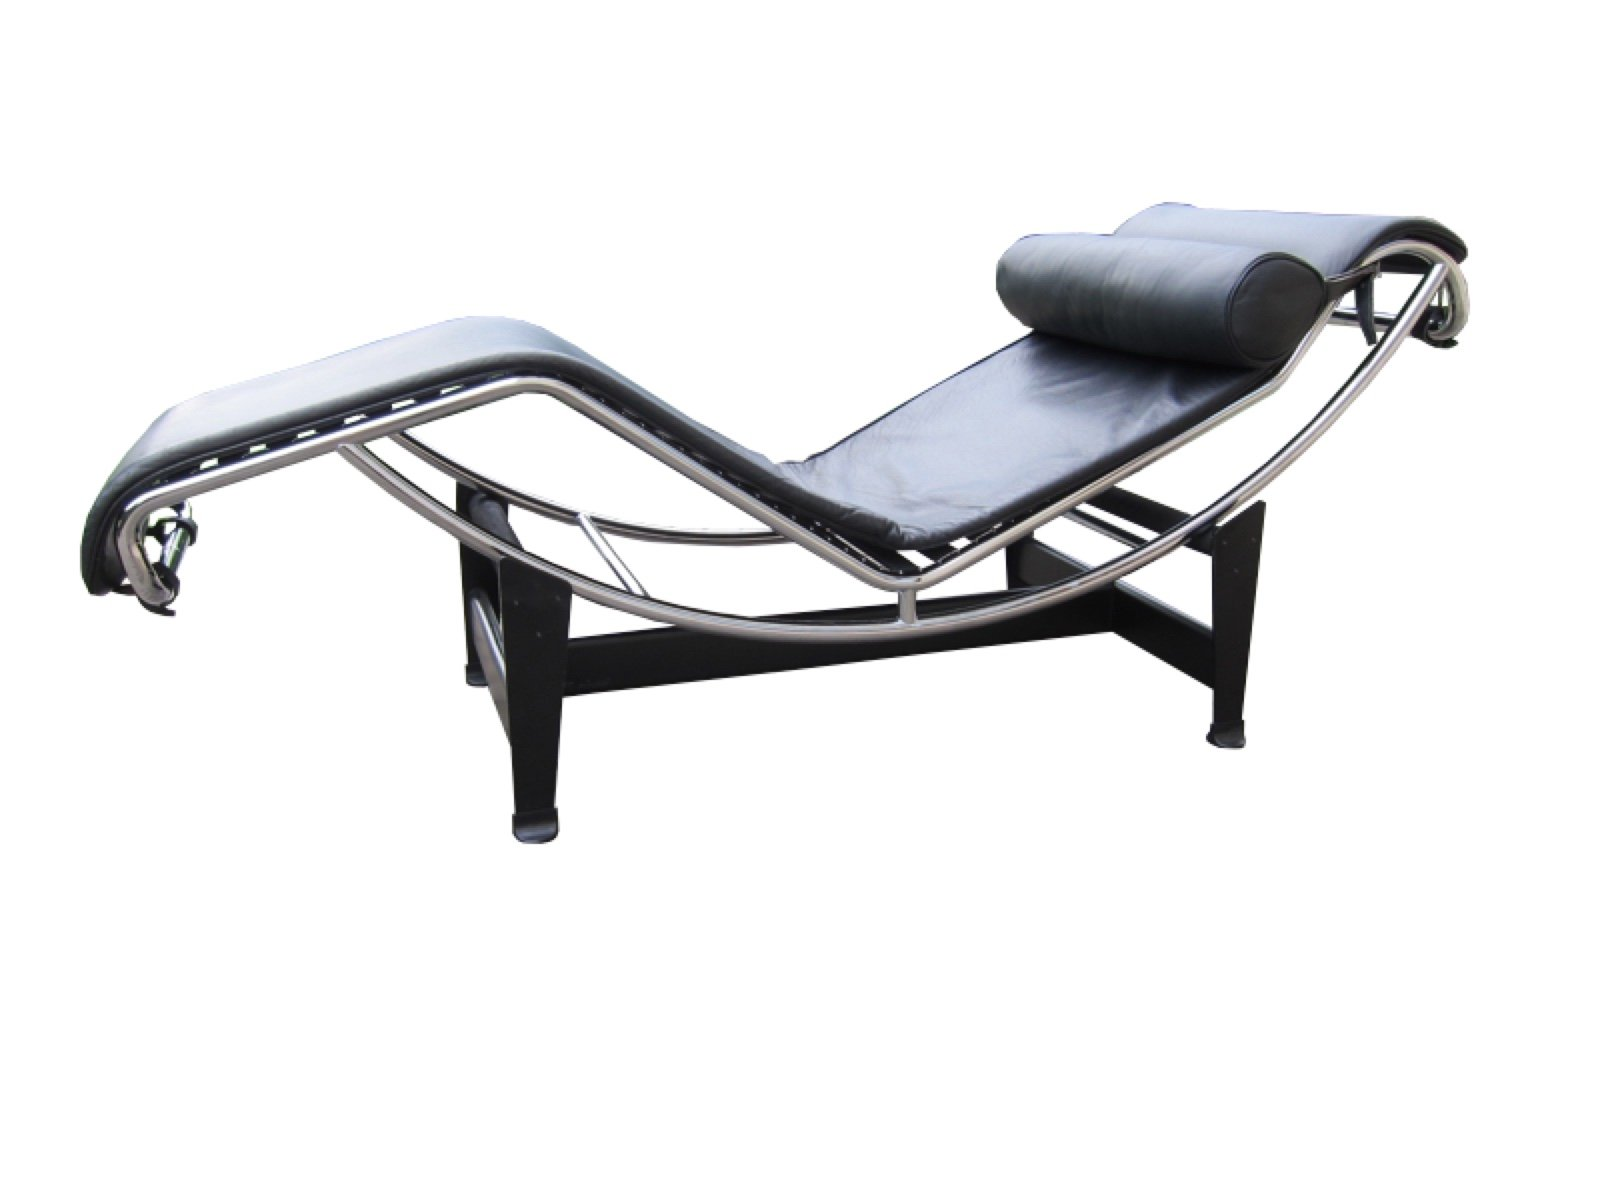 Vintage lc4 chaise longue by le corbusier pierre for Chaise longue design le corbusier